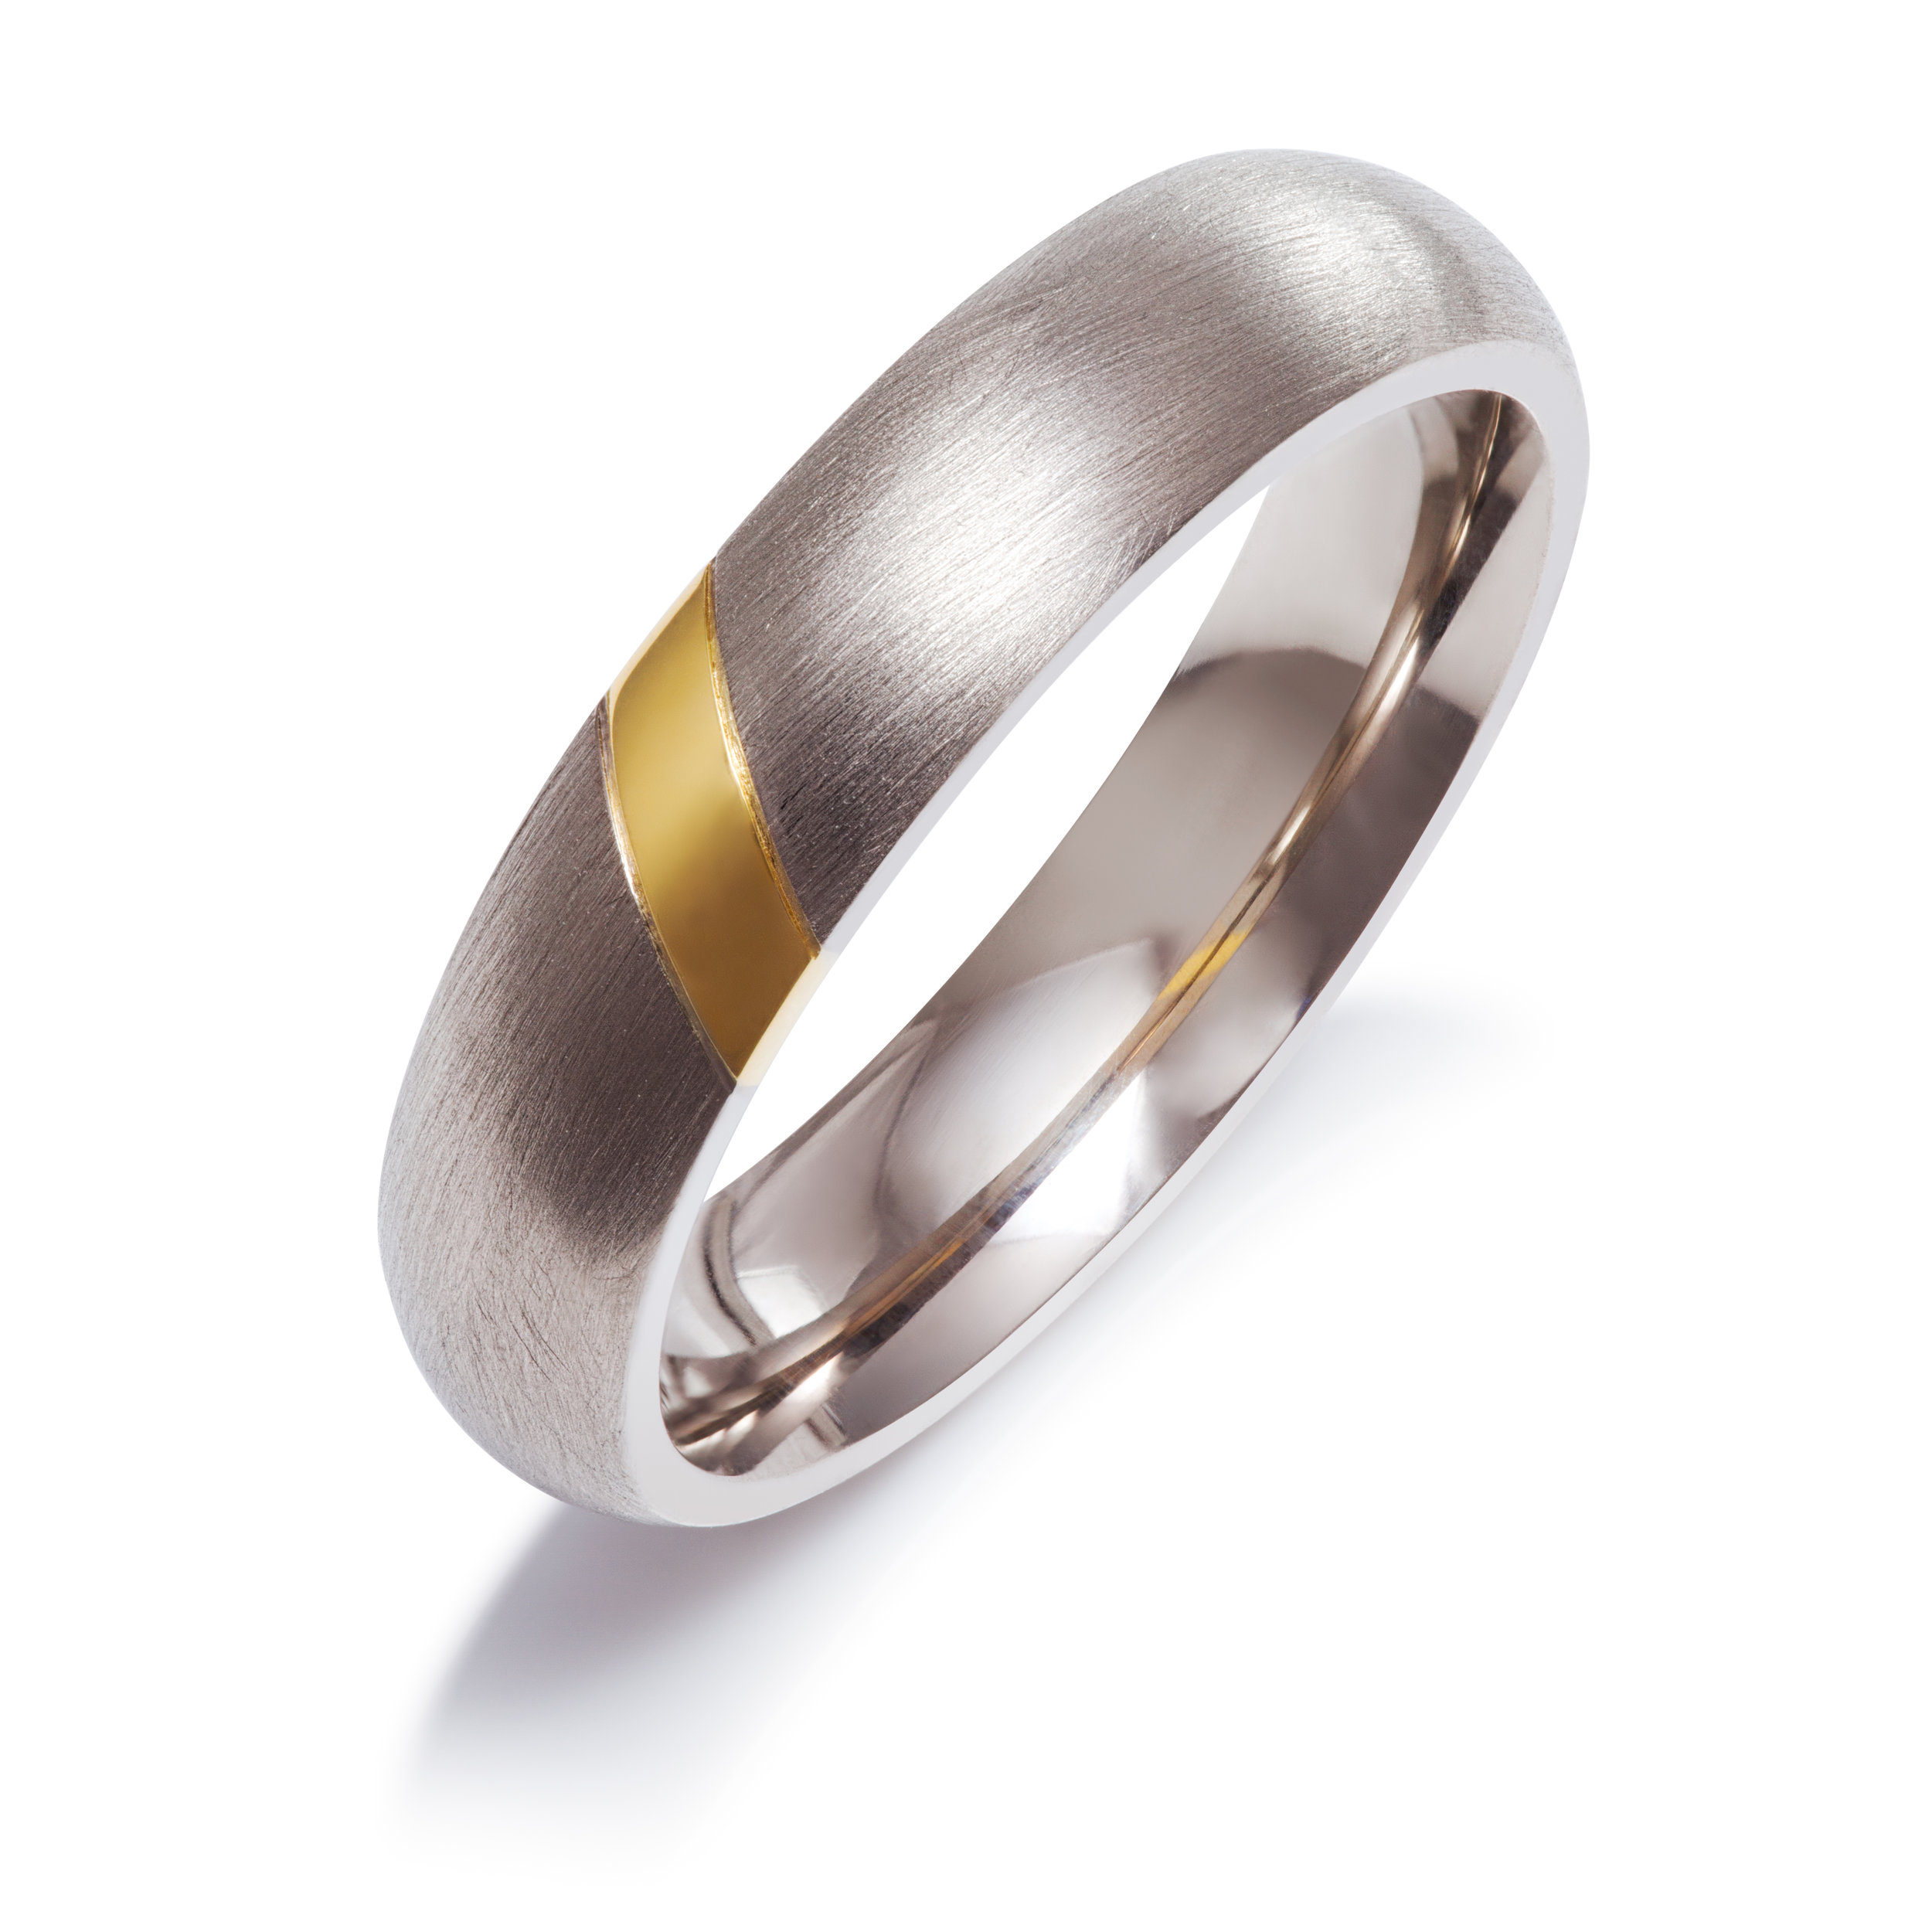 Bespoke 18ct white gold and 18ct yellow gold gents wedding ring commission